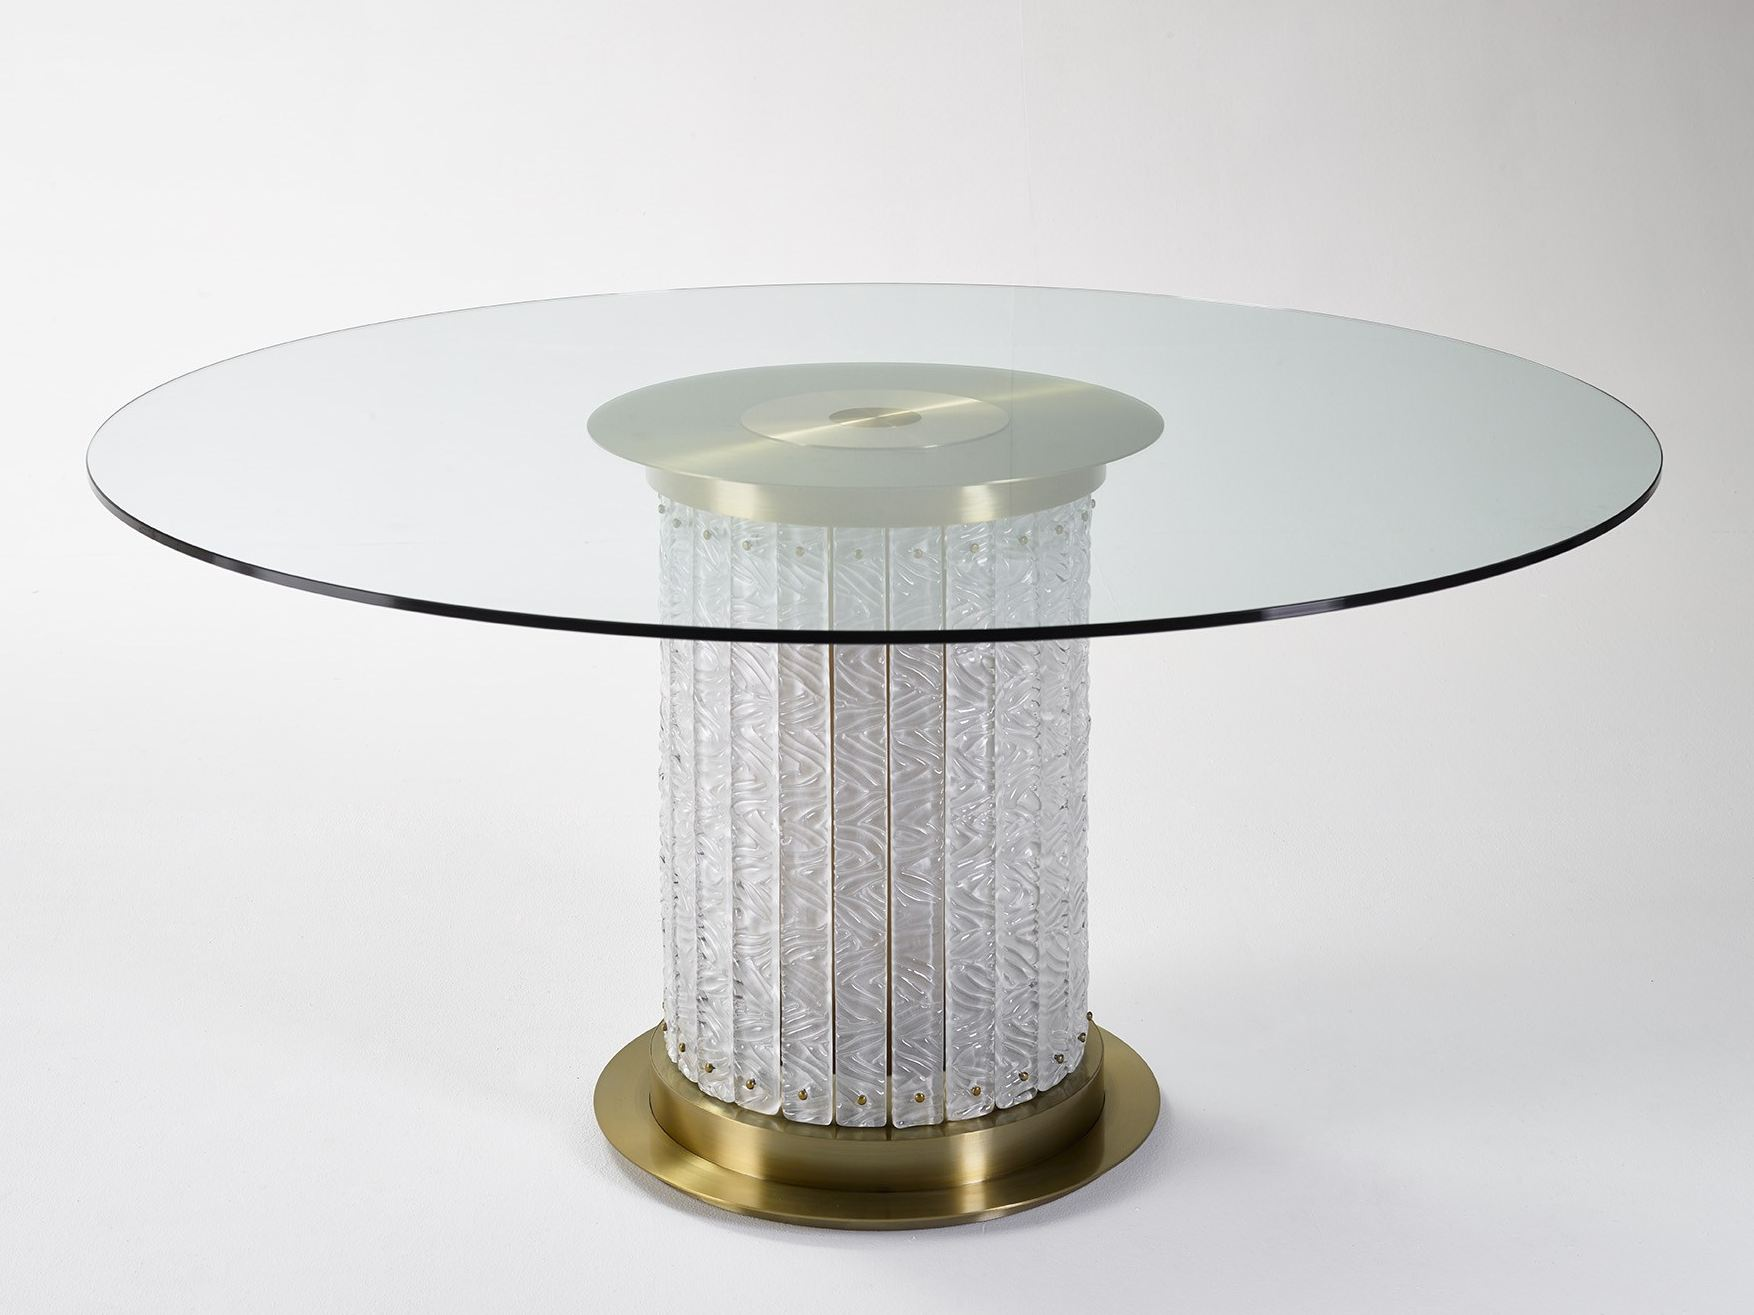 howard-round-glass-living-room-table